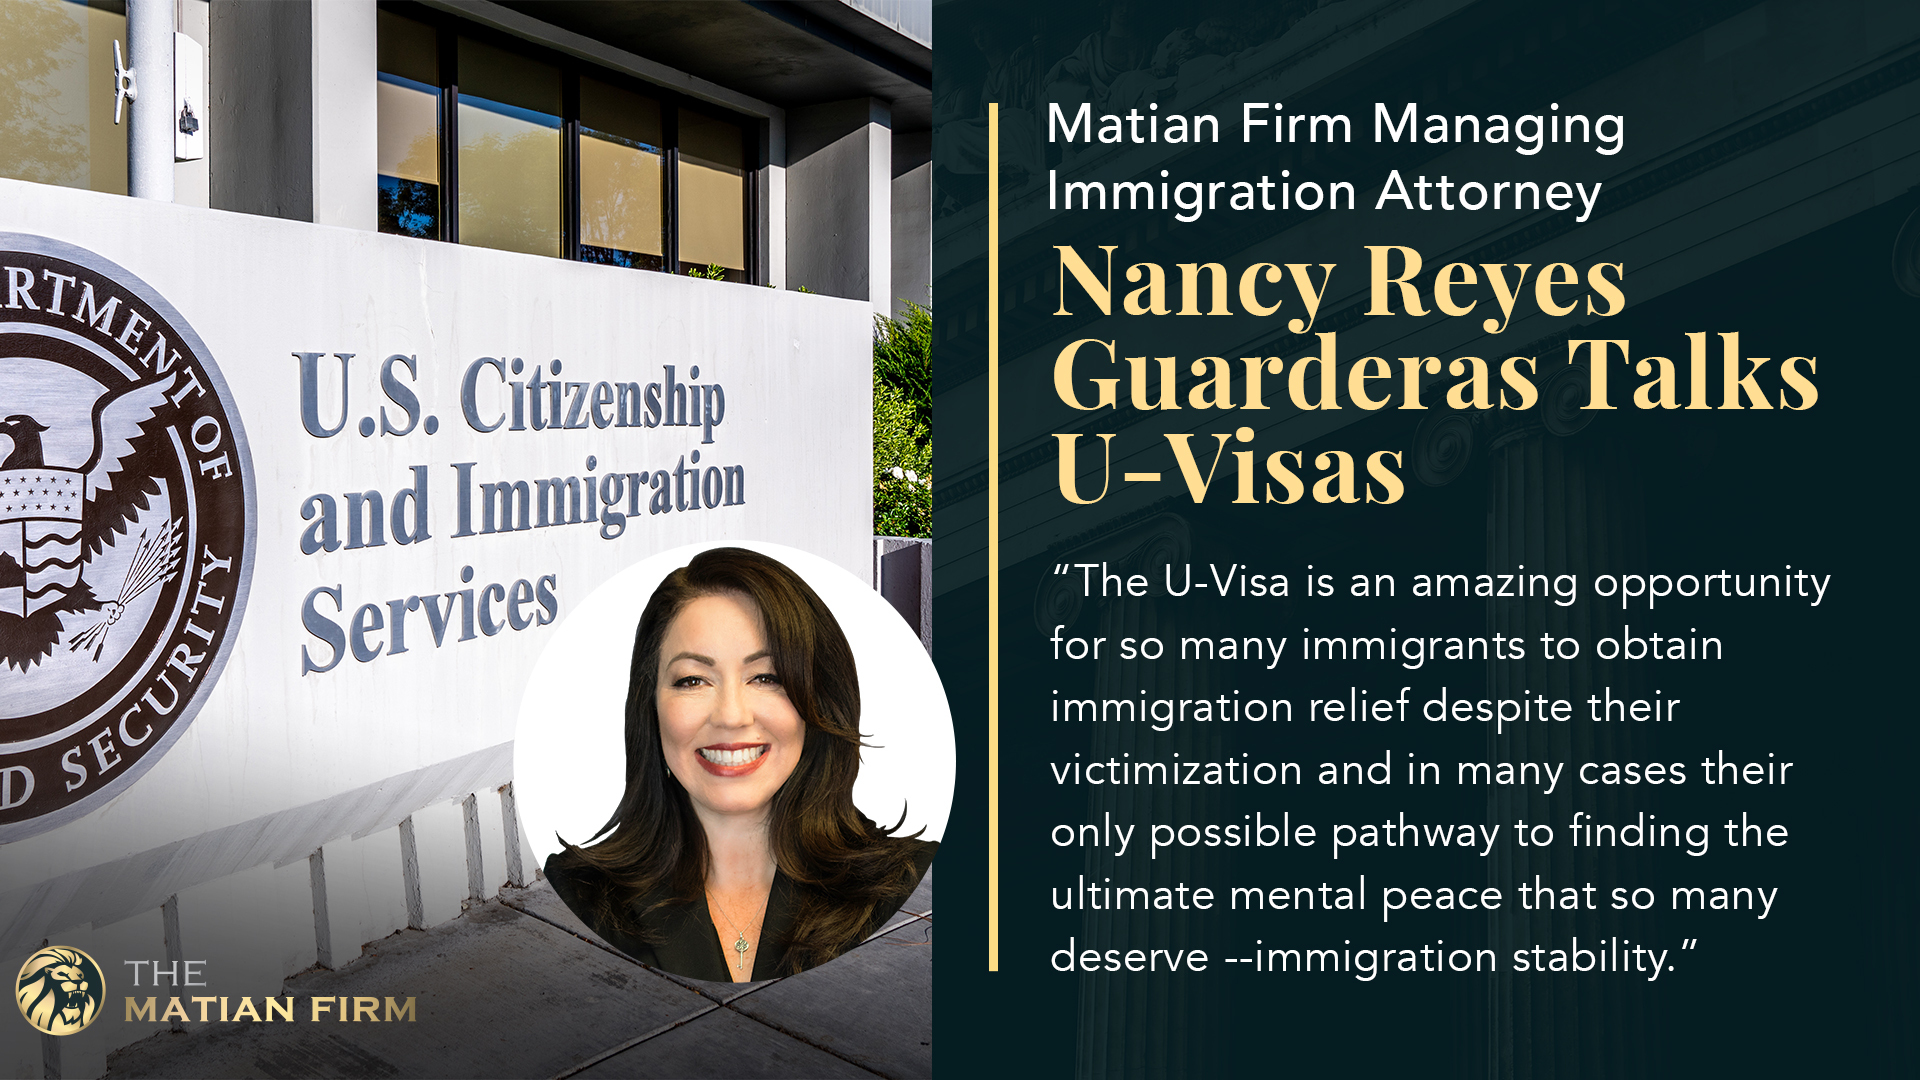 Matian Firm Managing Immigration Attorney Nancy Reyes Guarderas Talks U-Visas 1